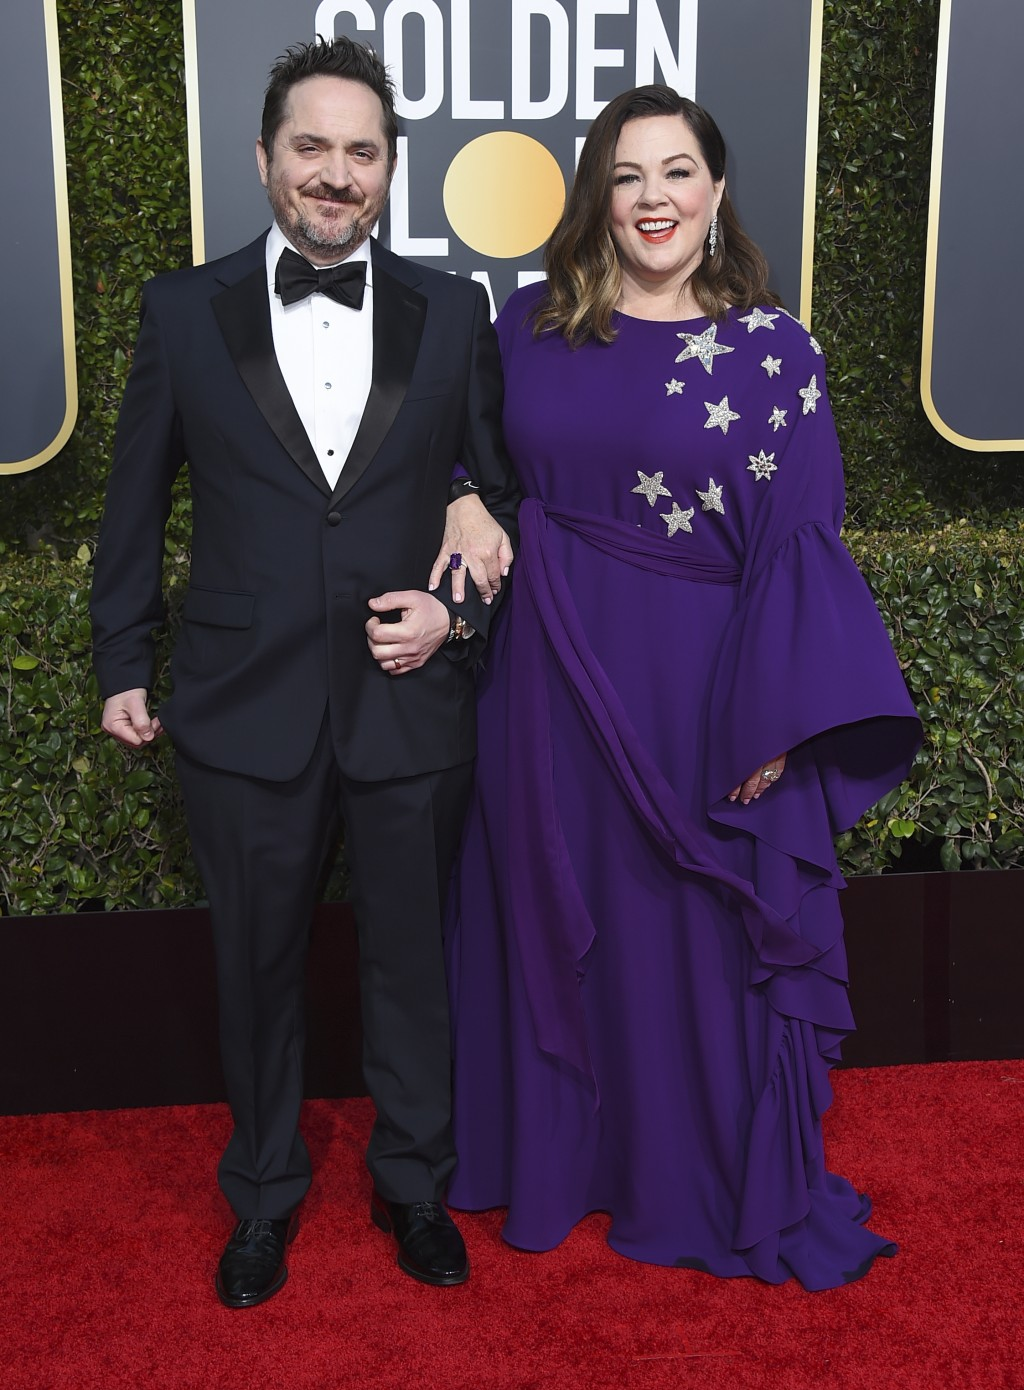 Ben Falcone, left, and Melissa McCarthy arrive at the 76th annual Golden Globe Awards at the Beverly Hilton Hotel on Sunday, Jan. 6, 2019, in Beverly